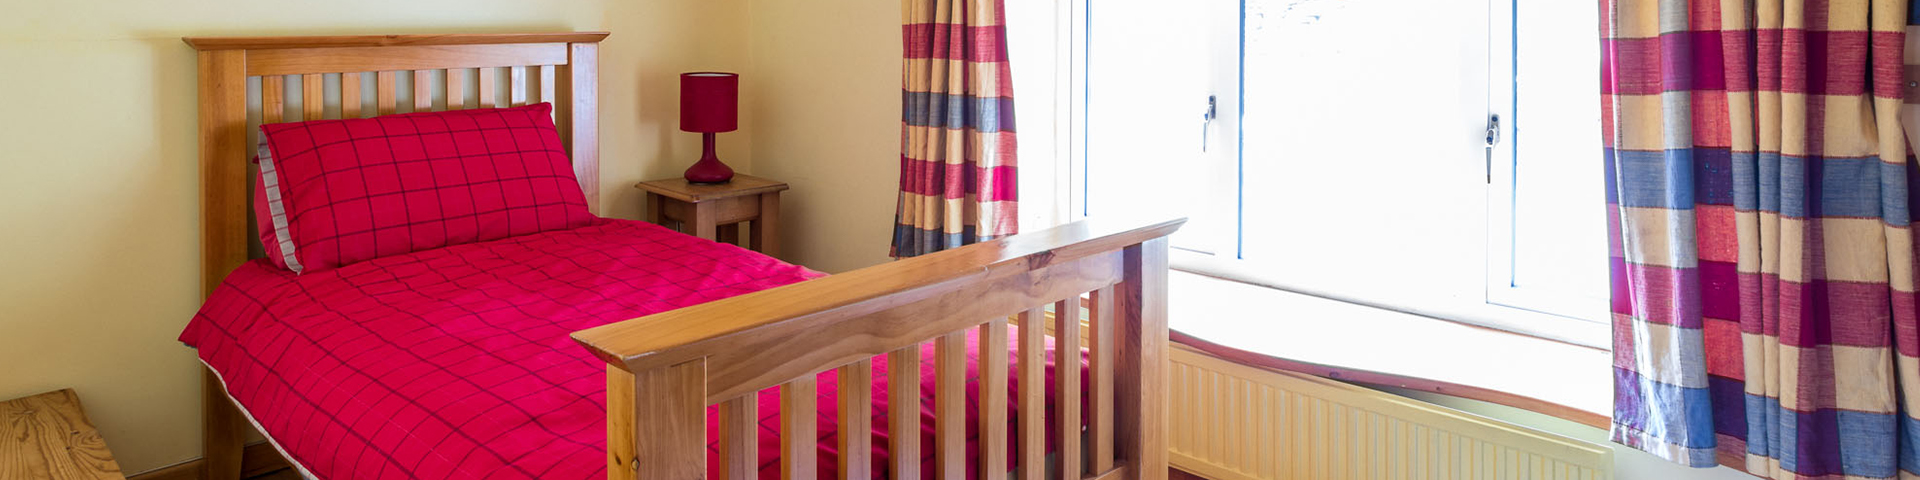 best places for family holidays uk, relaxing breaks uk, luxury holiday cottages